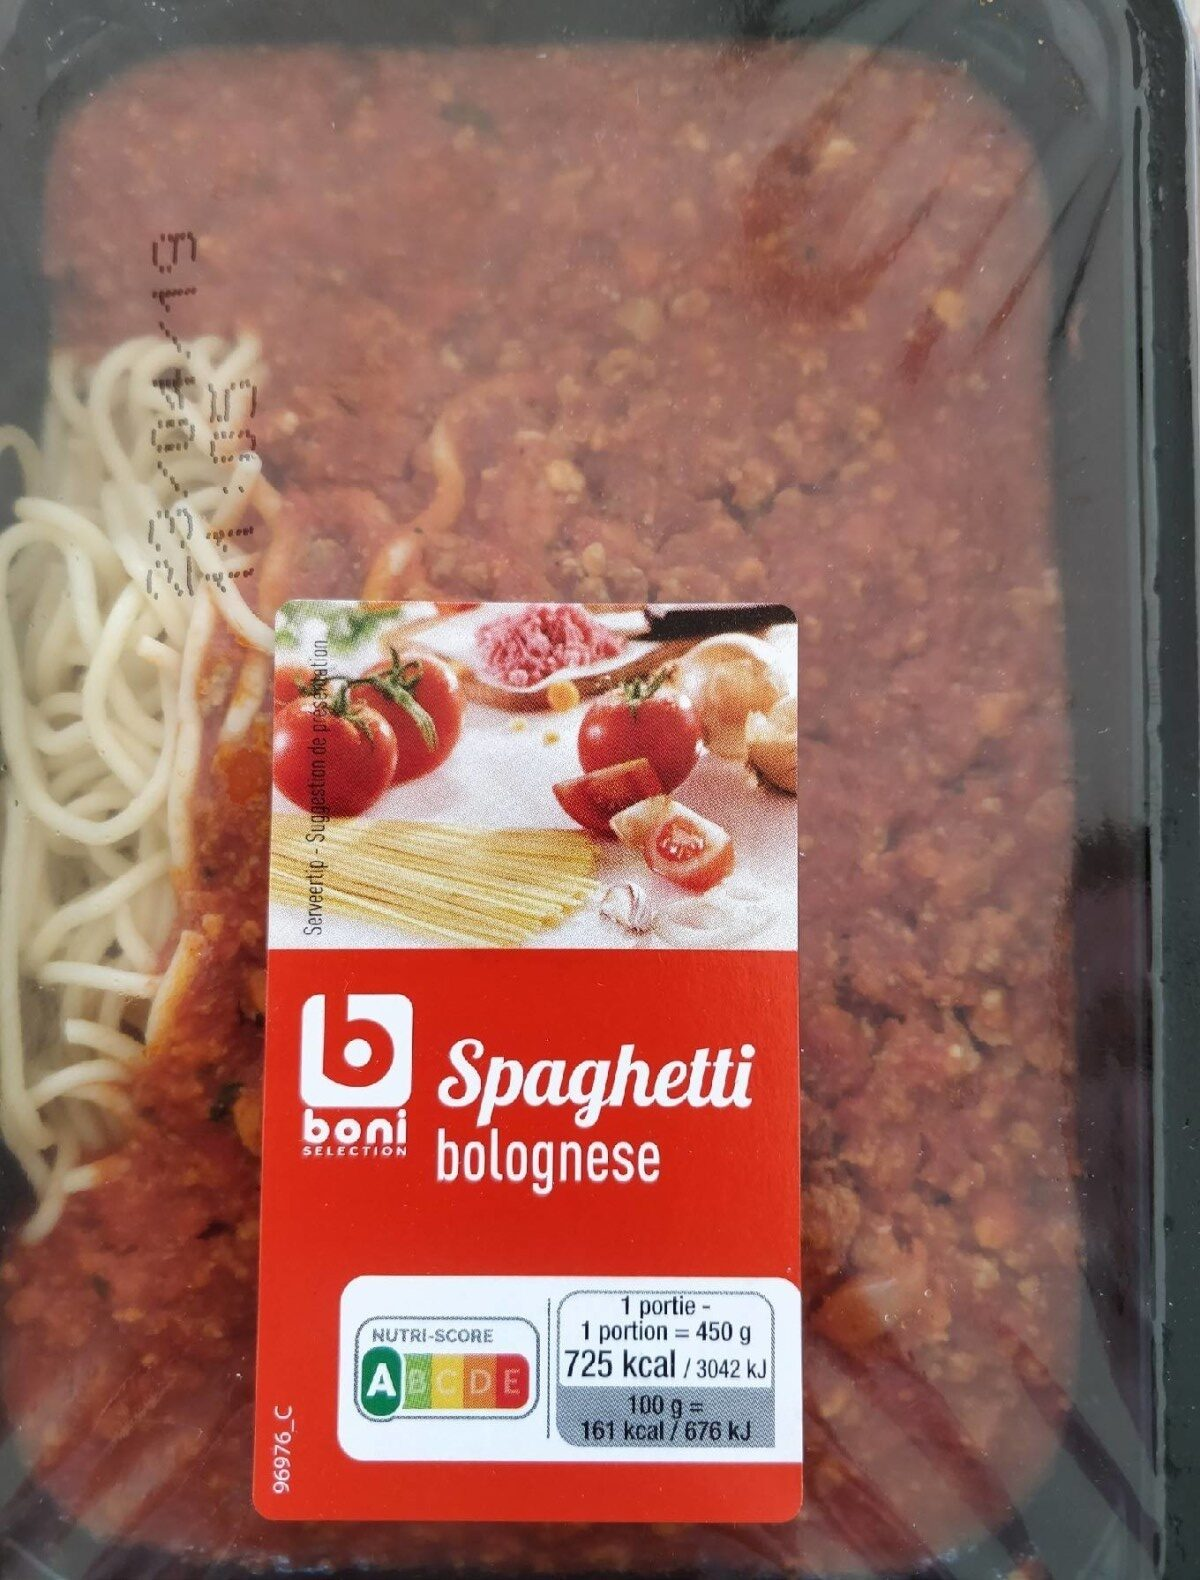 Spaghetti bolognese - Product - fr